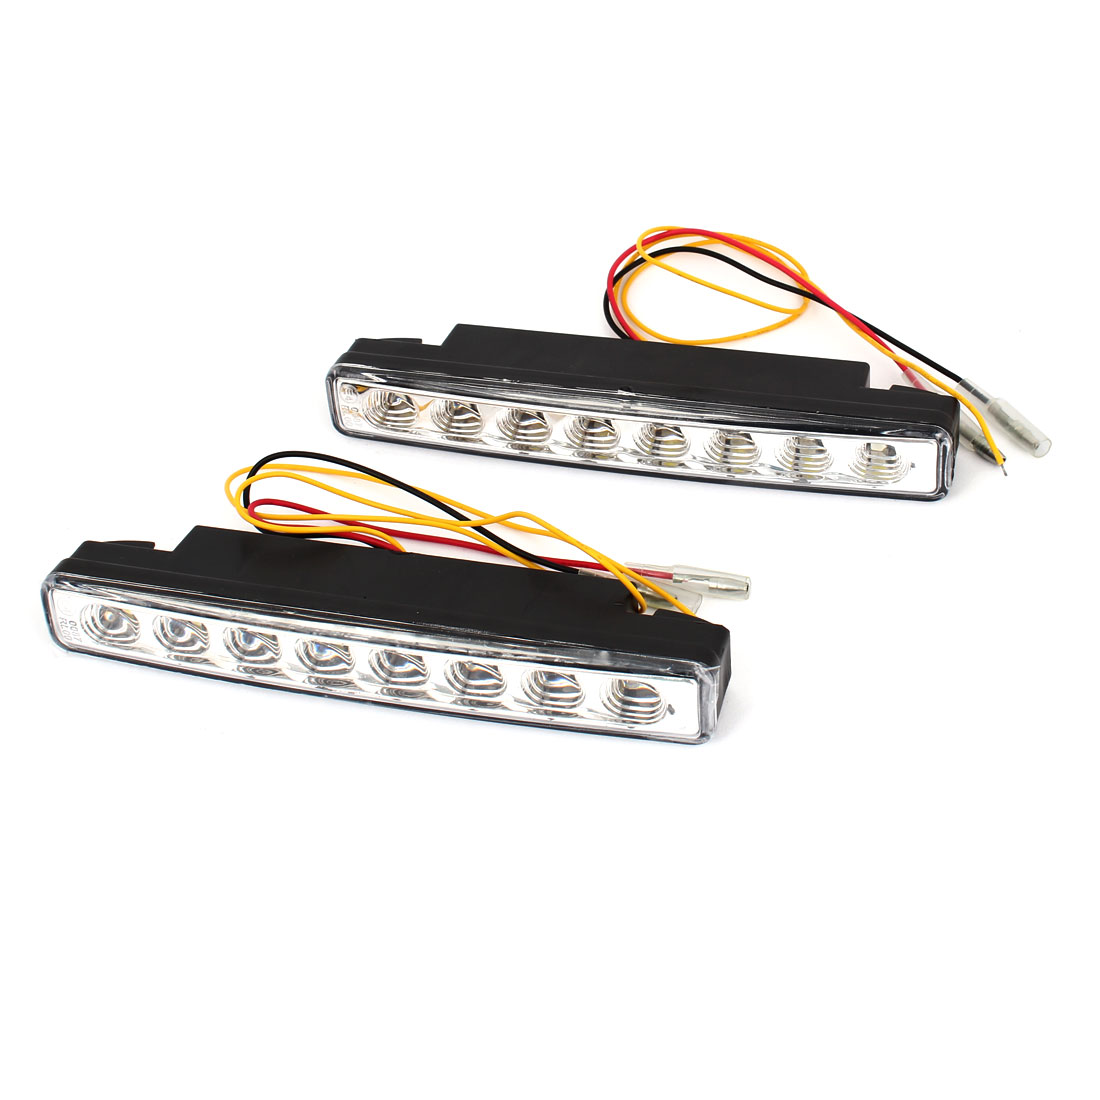 Pair White Yellow 1210 SMD 16 LED Daytime Running Light Driving Lamp 12V